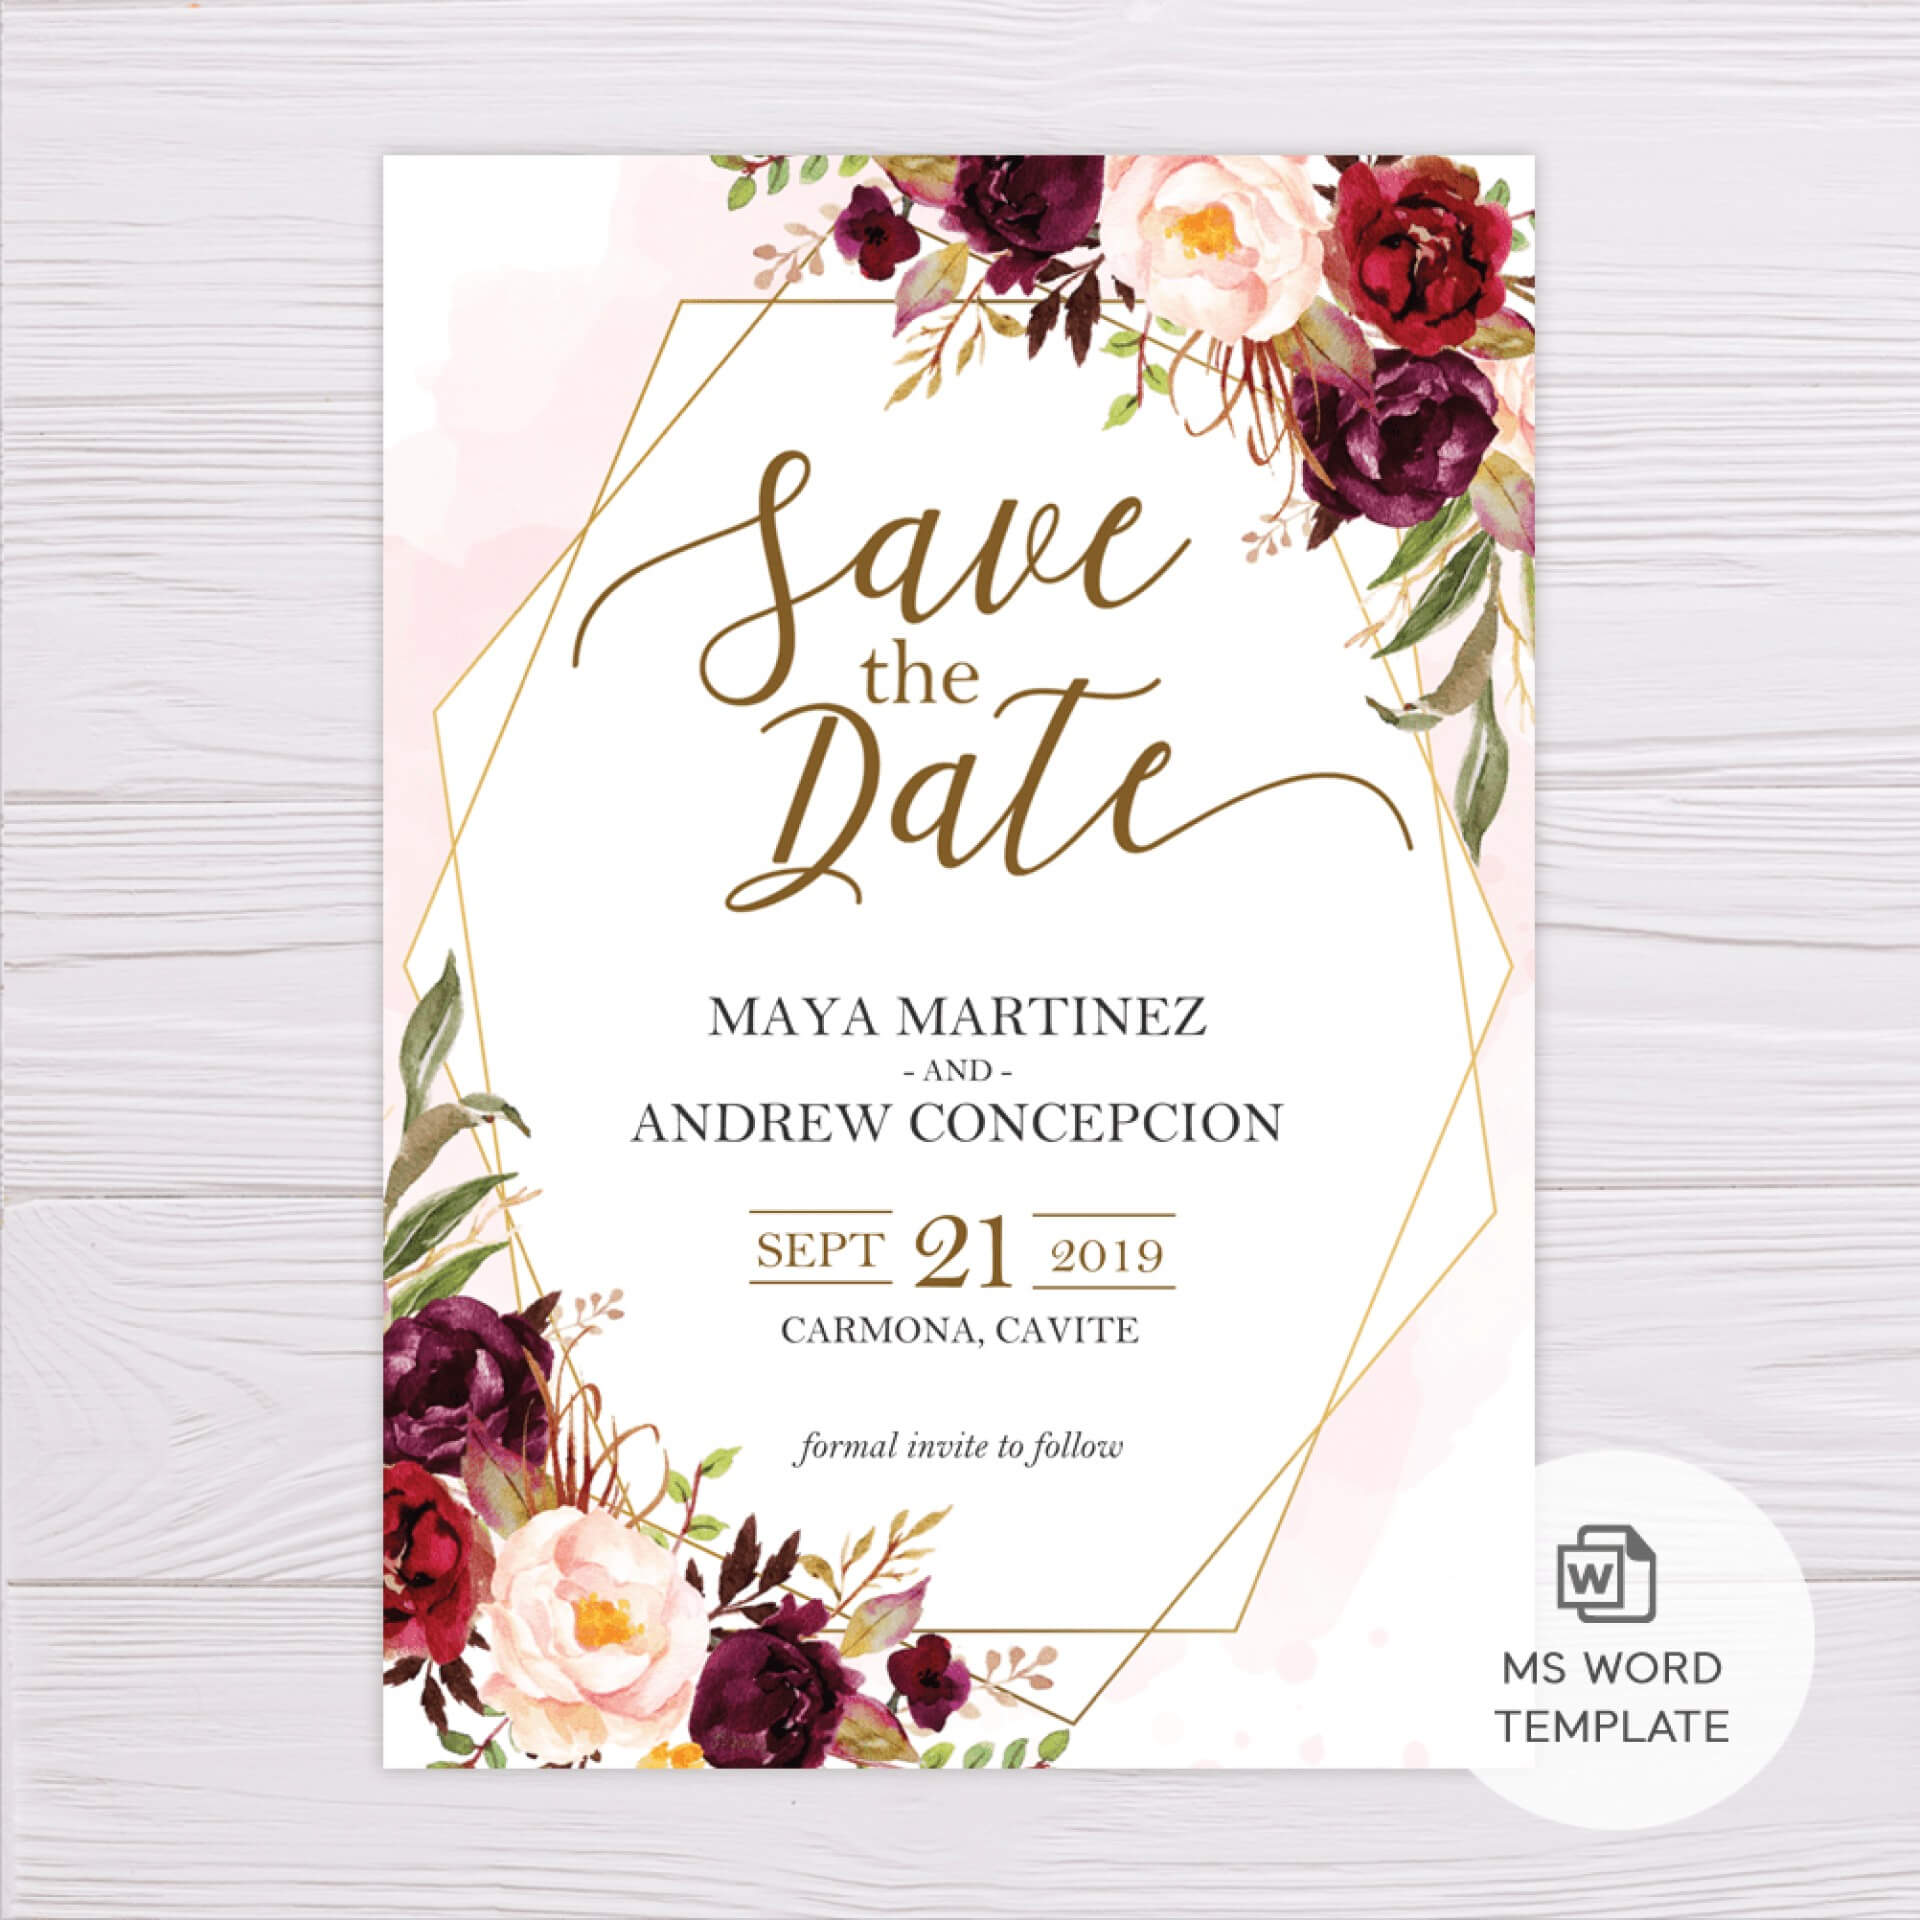 014 Free Customizable Save The Date Templates Word Template Throughout Save The Date Template Word